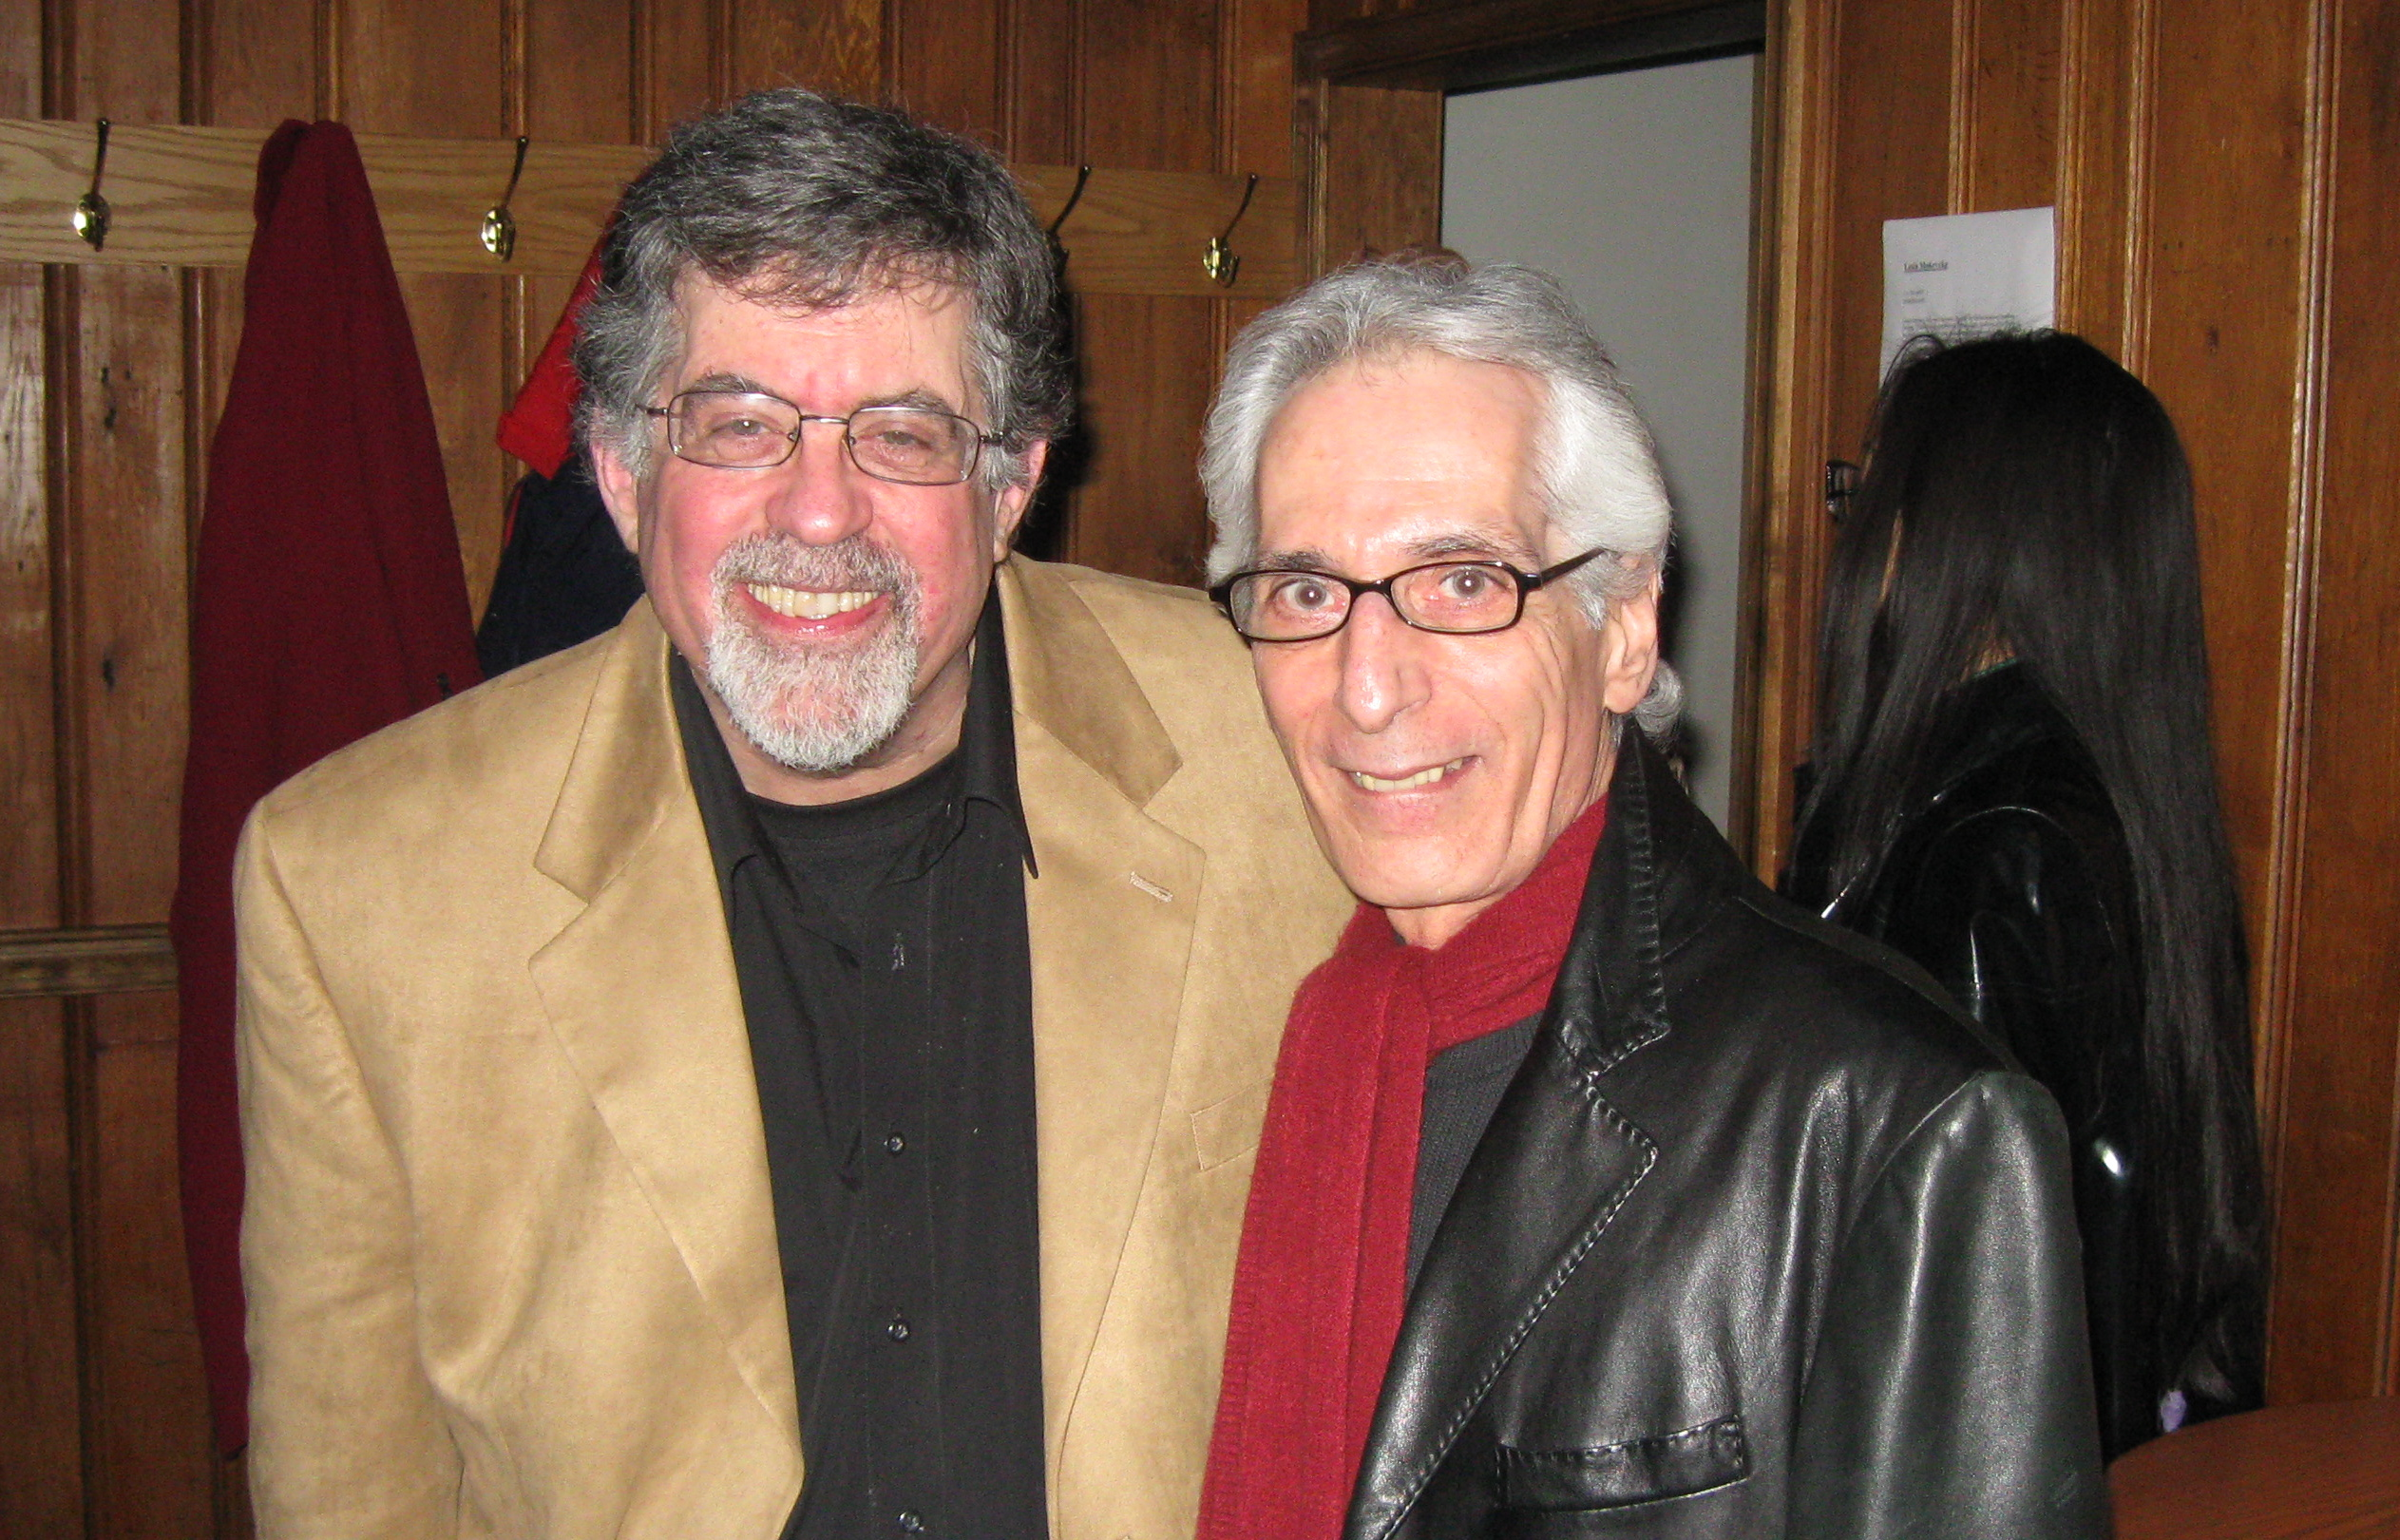 Chuck Anderson and Pat Martino